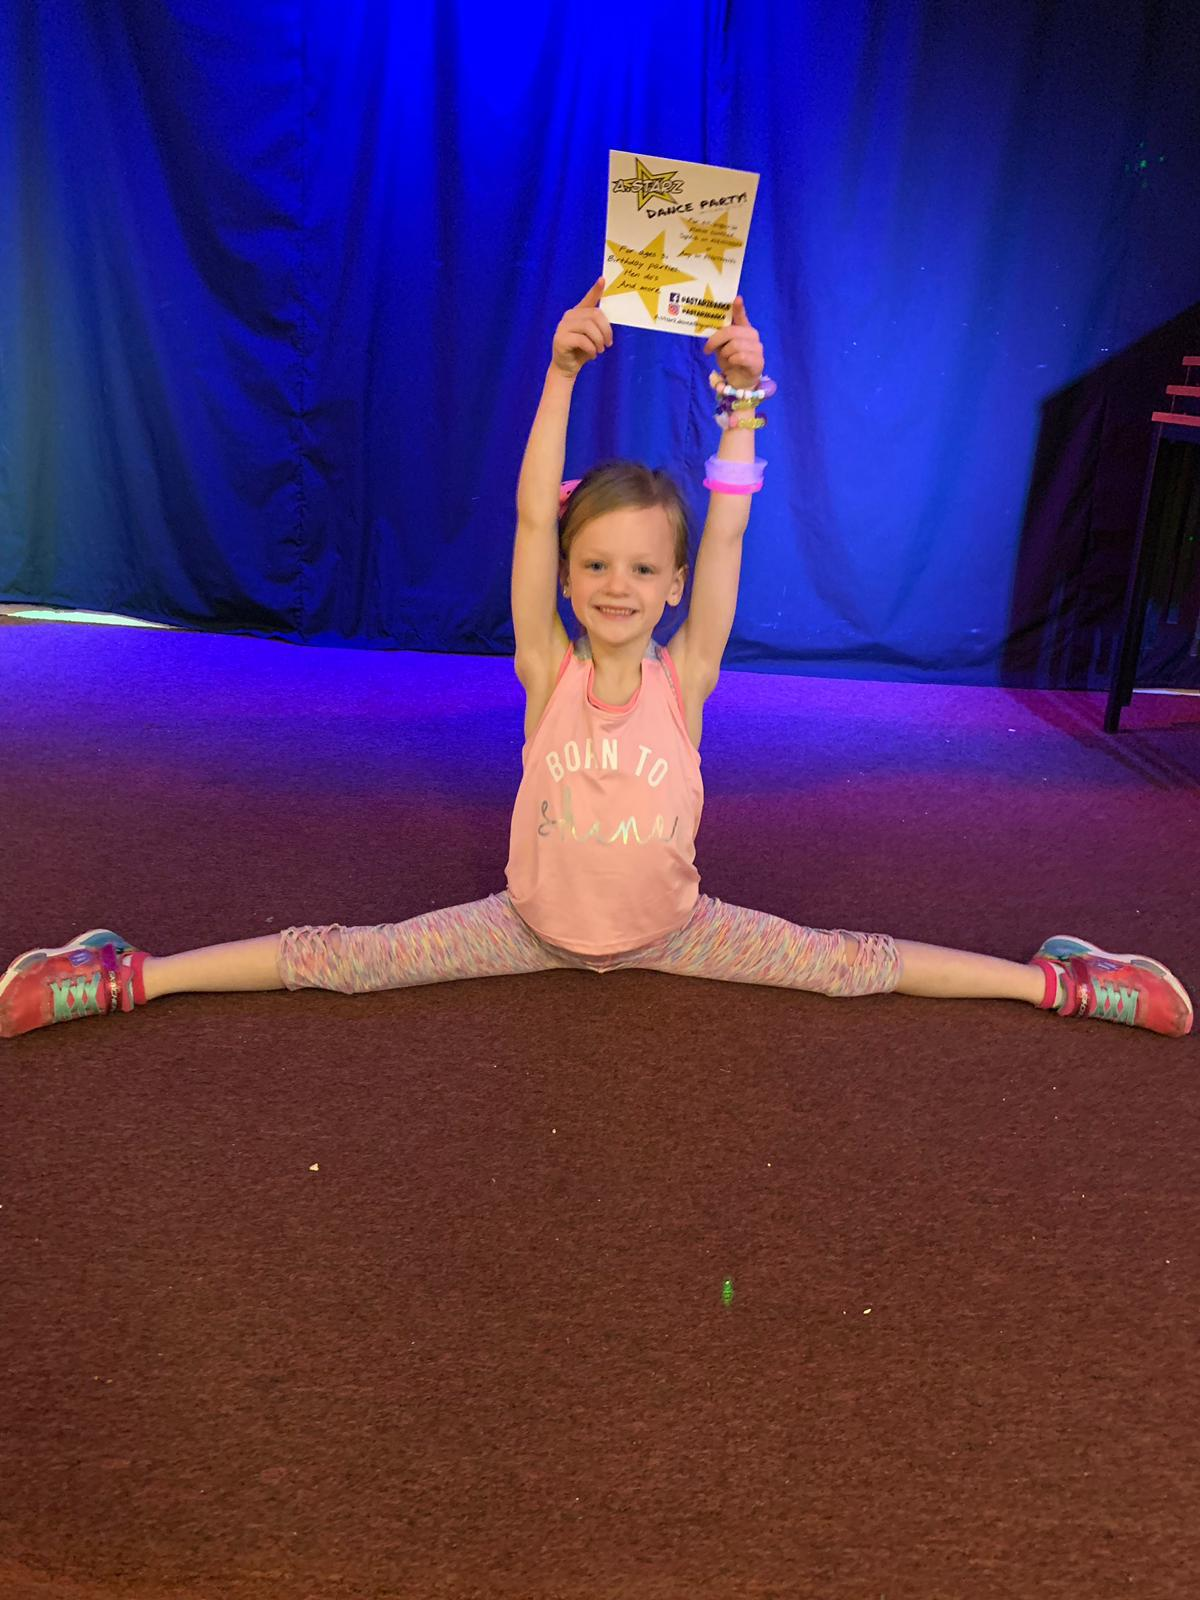 A girl doing side splits and holding a dance party certificate in the air